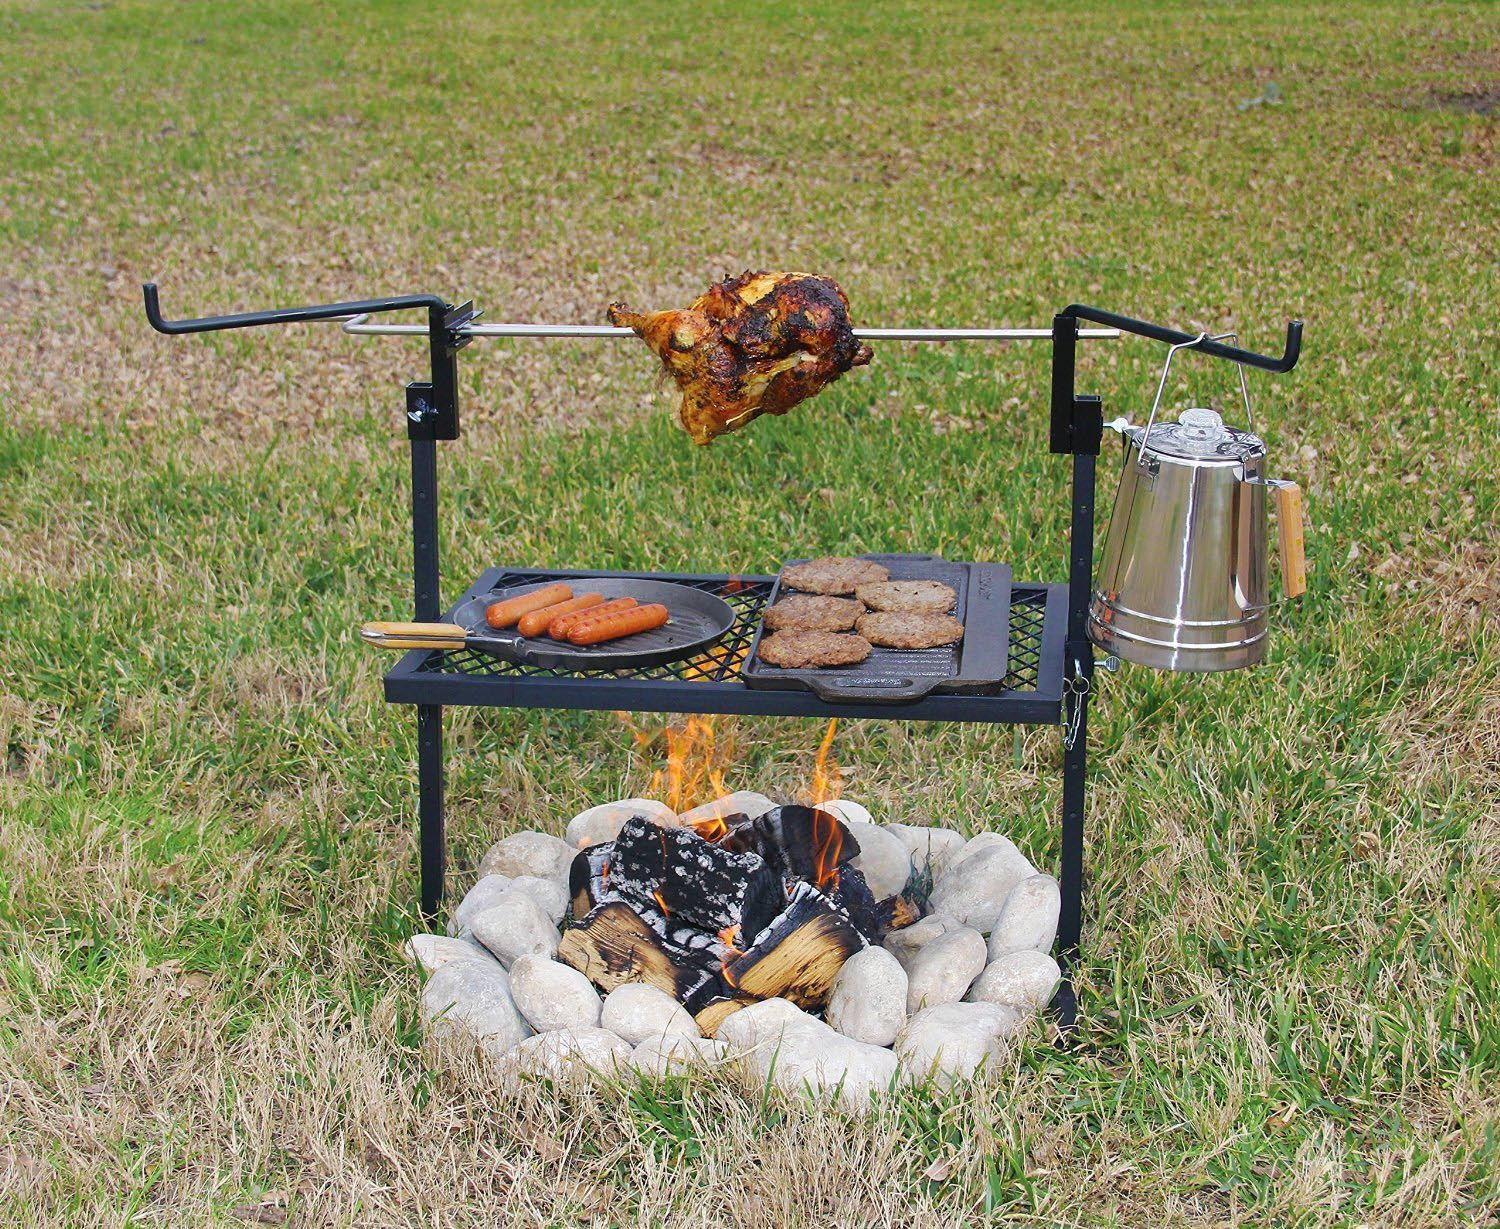 Cowboy Grill Open Fire Pit | Campfire cooking equipment ...